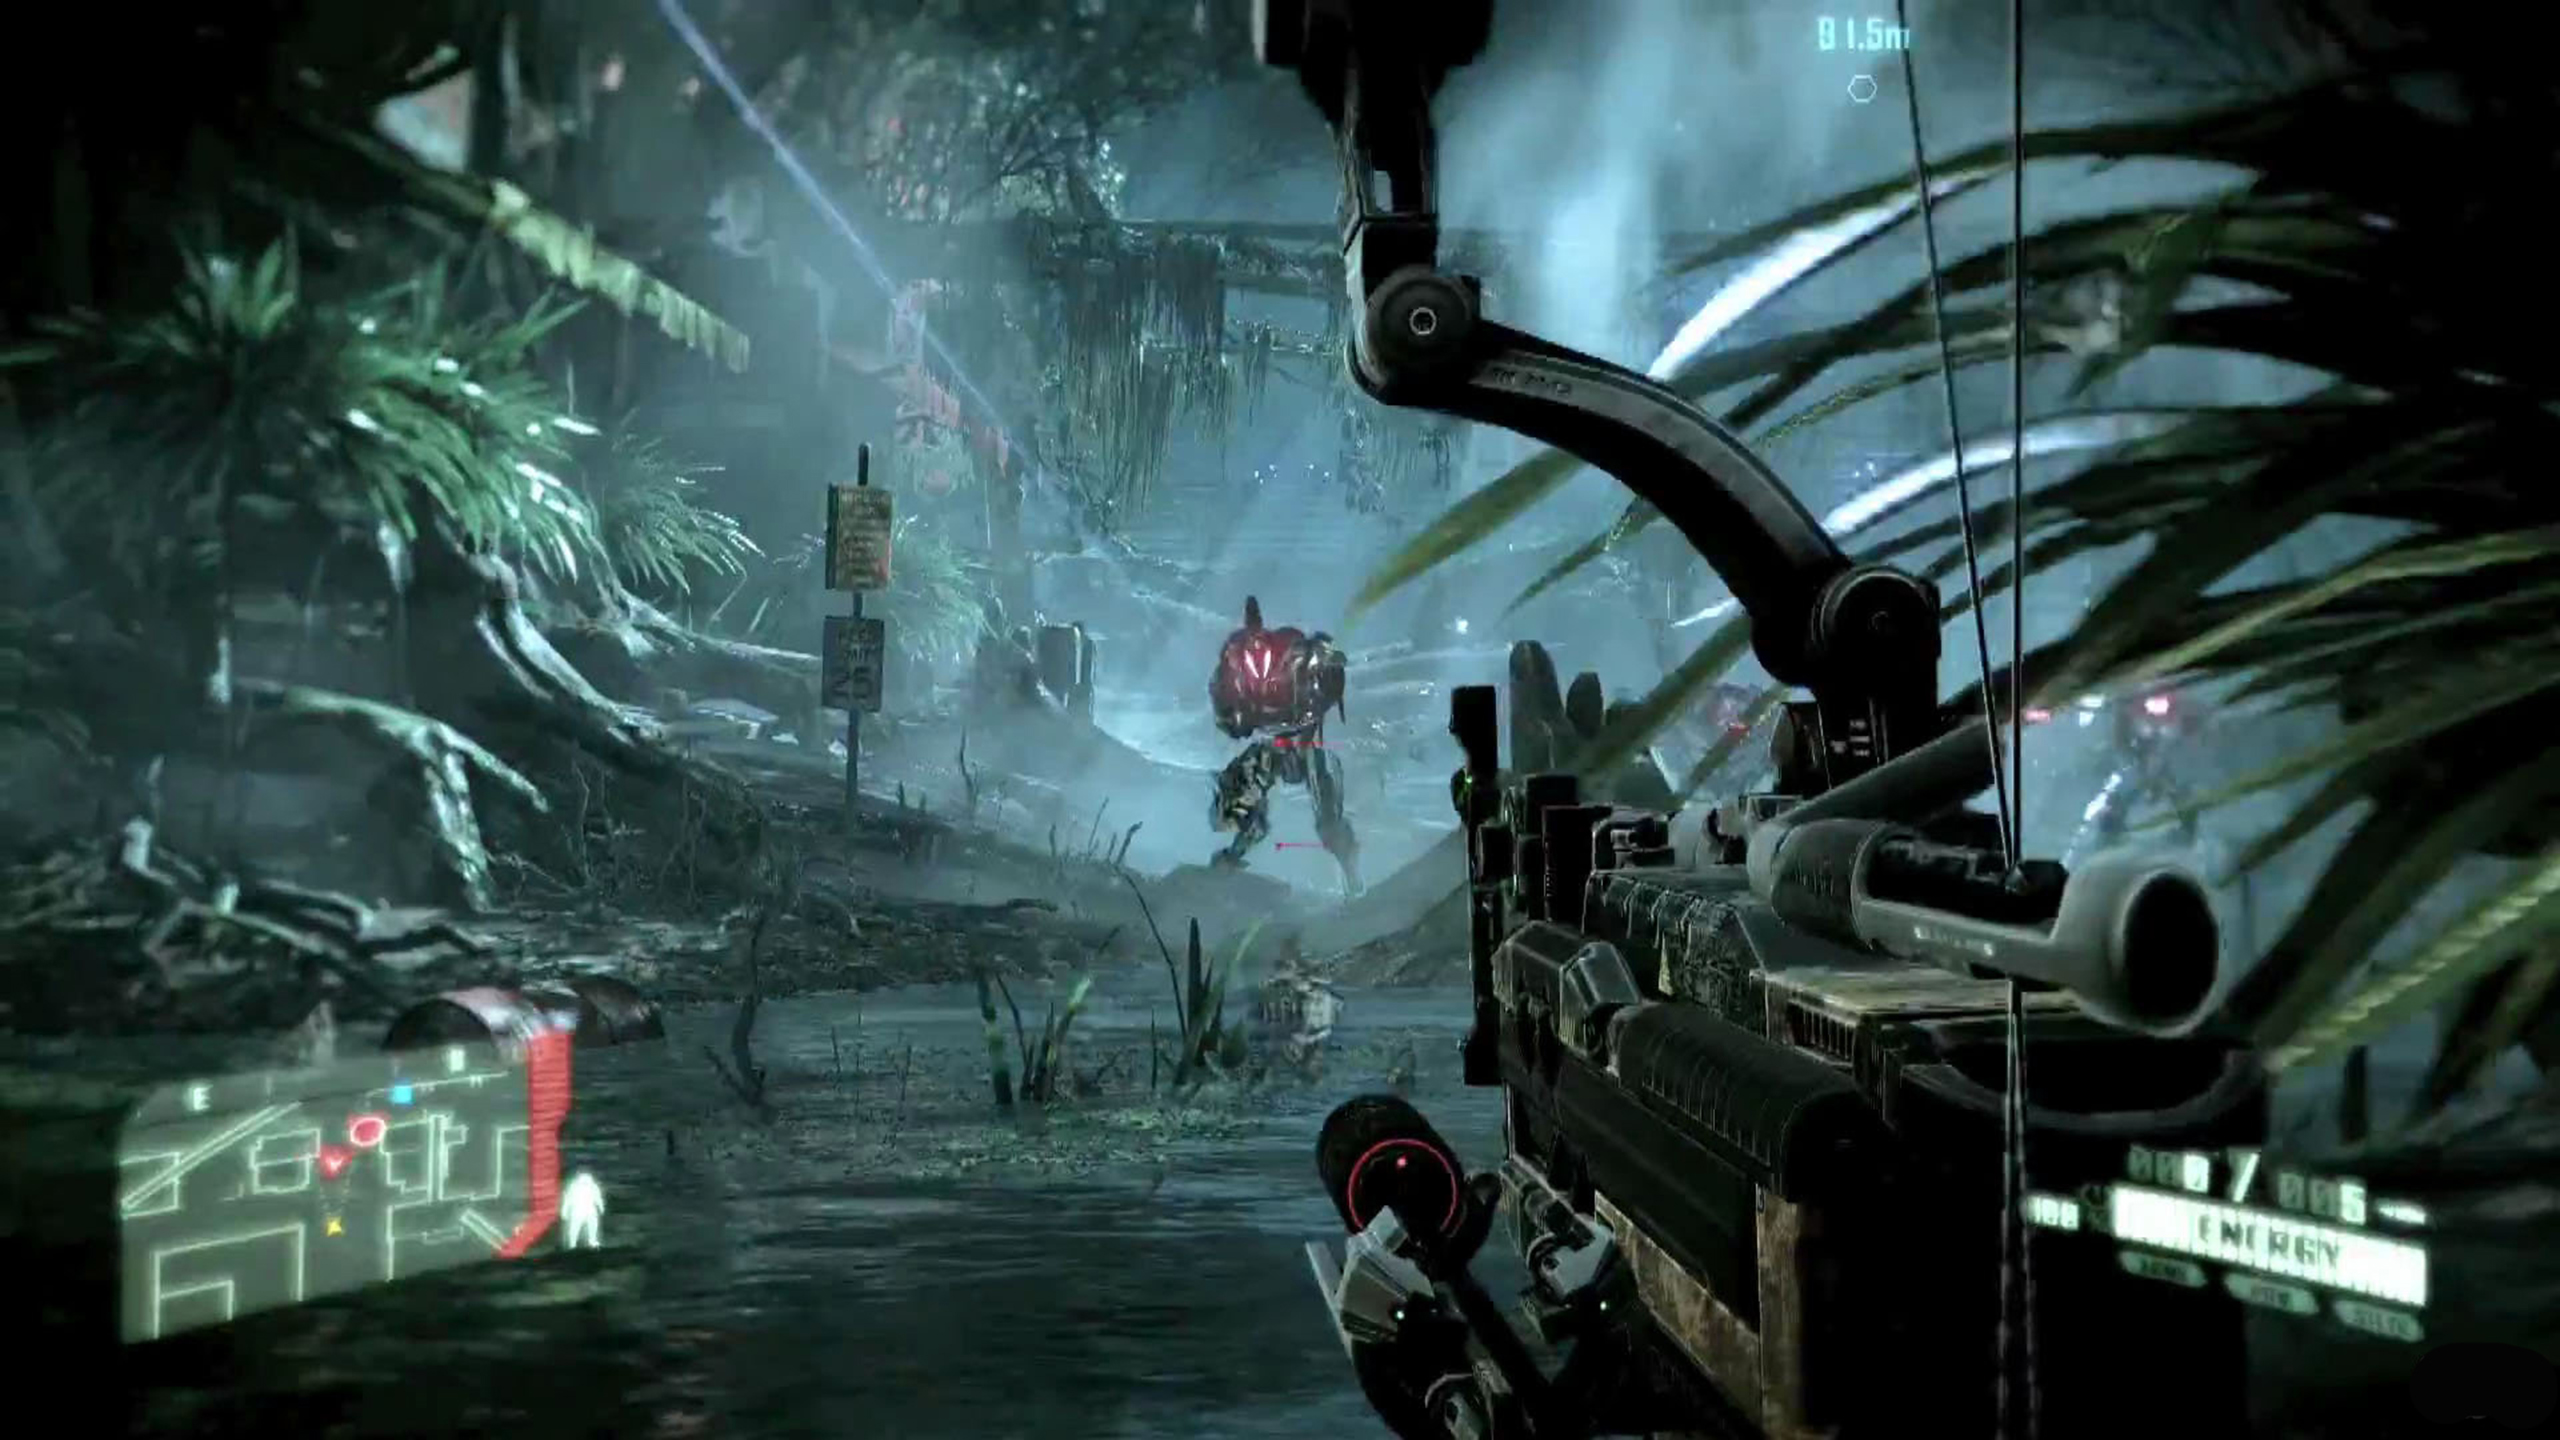 crysis 3 hd wallpaper | background image | 2560x1440 | id:263442